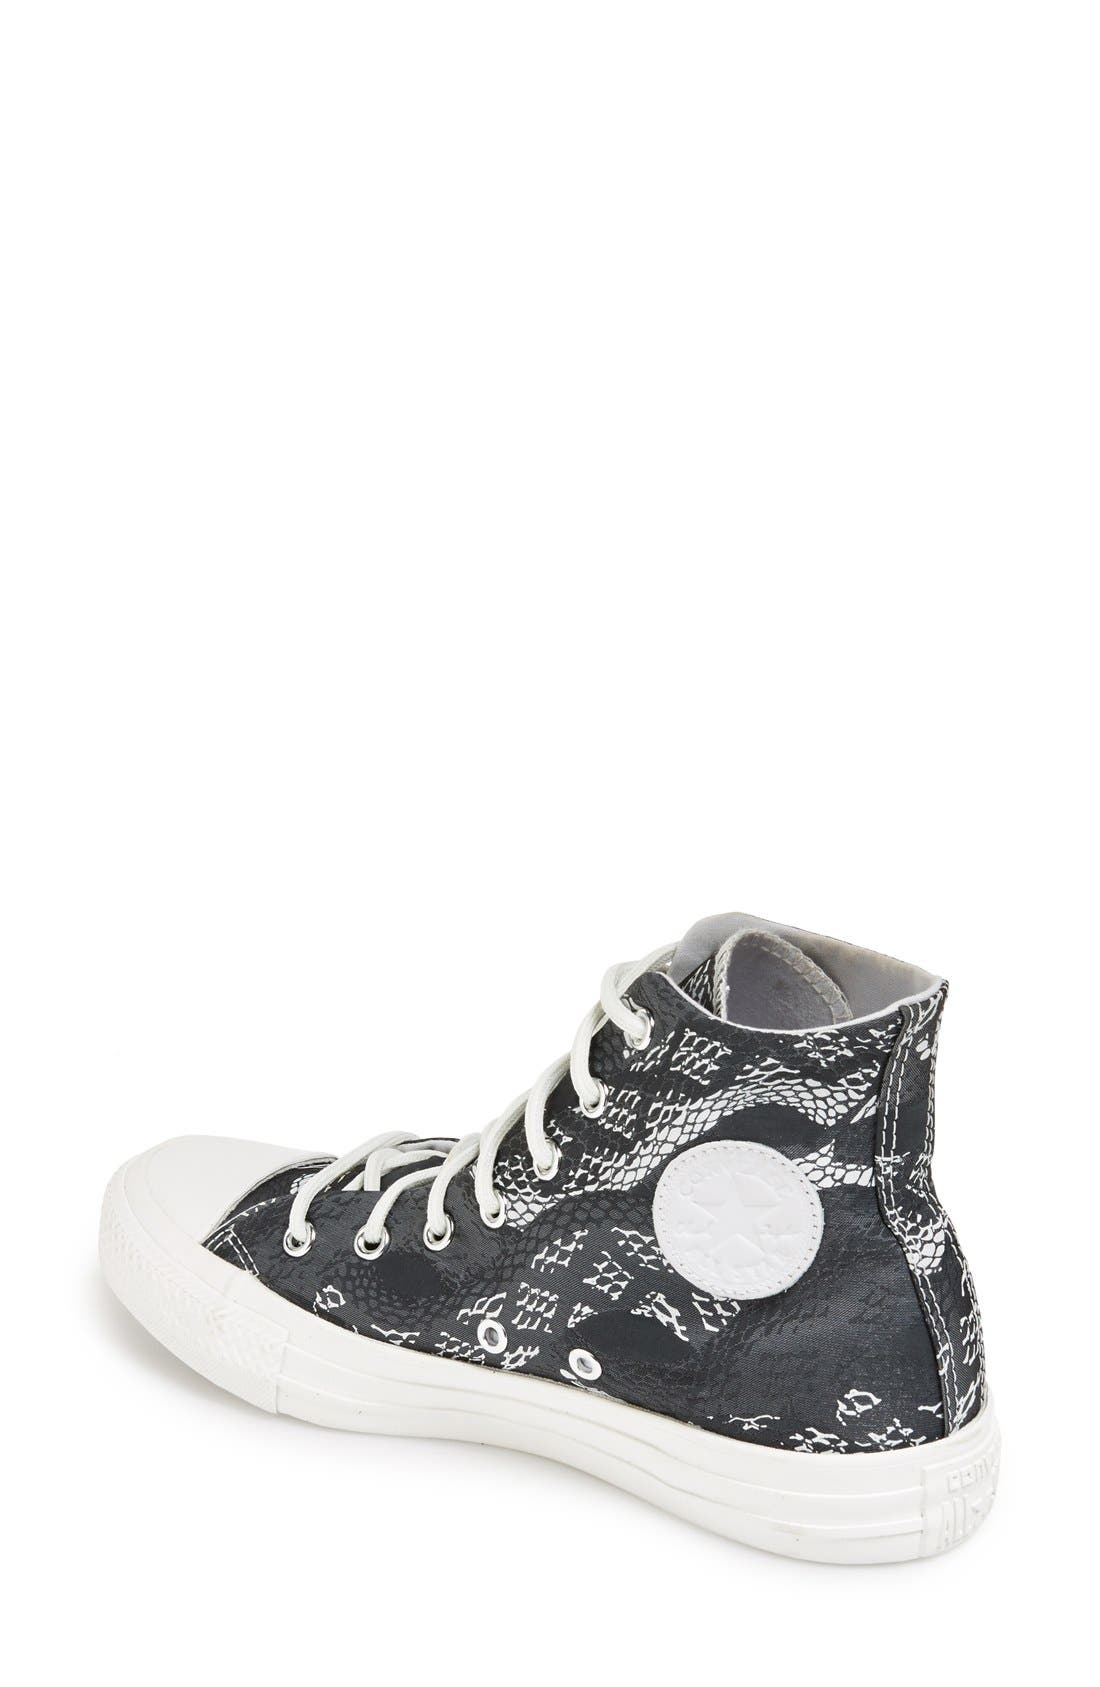 Alternate Image 2  - Converse Chuck Taylor® 'Reptile Print' High Top Sneaker (Women)